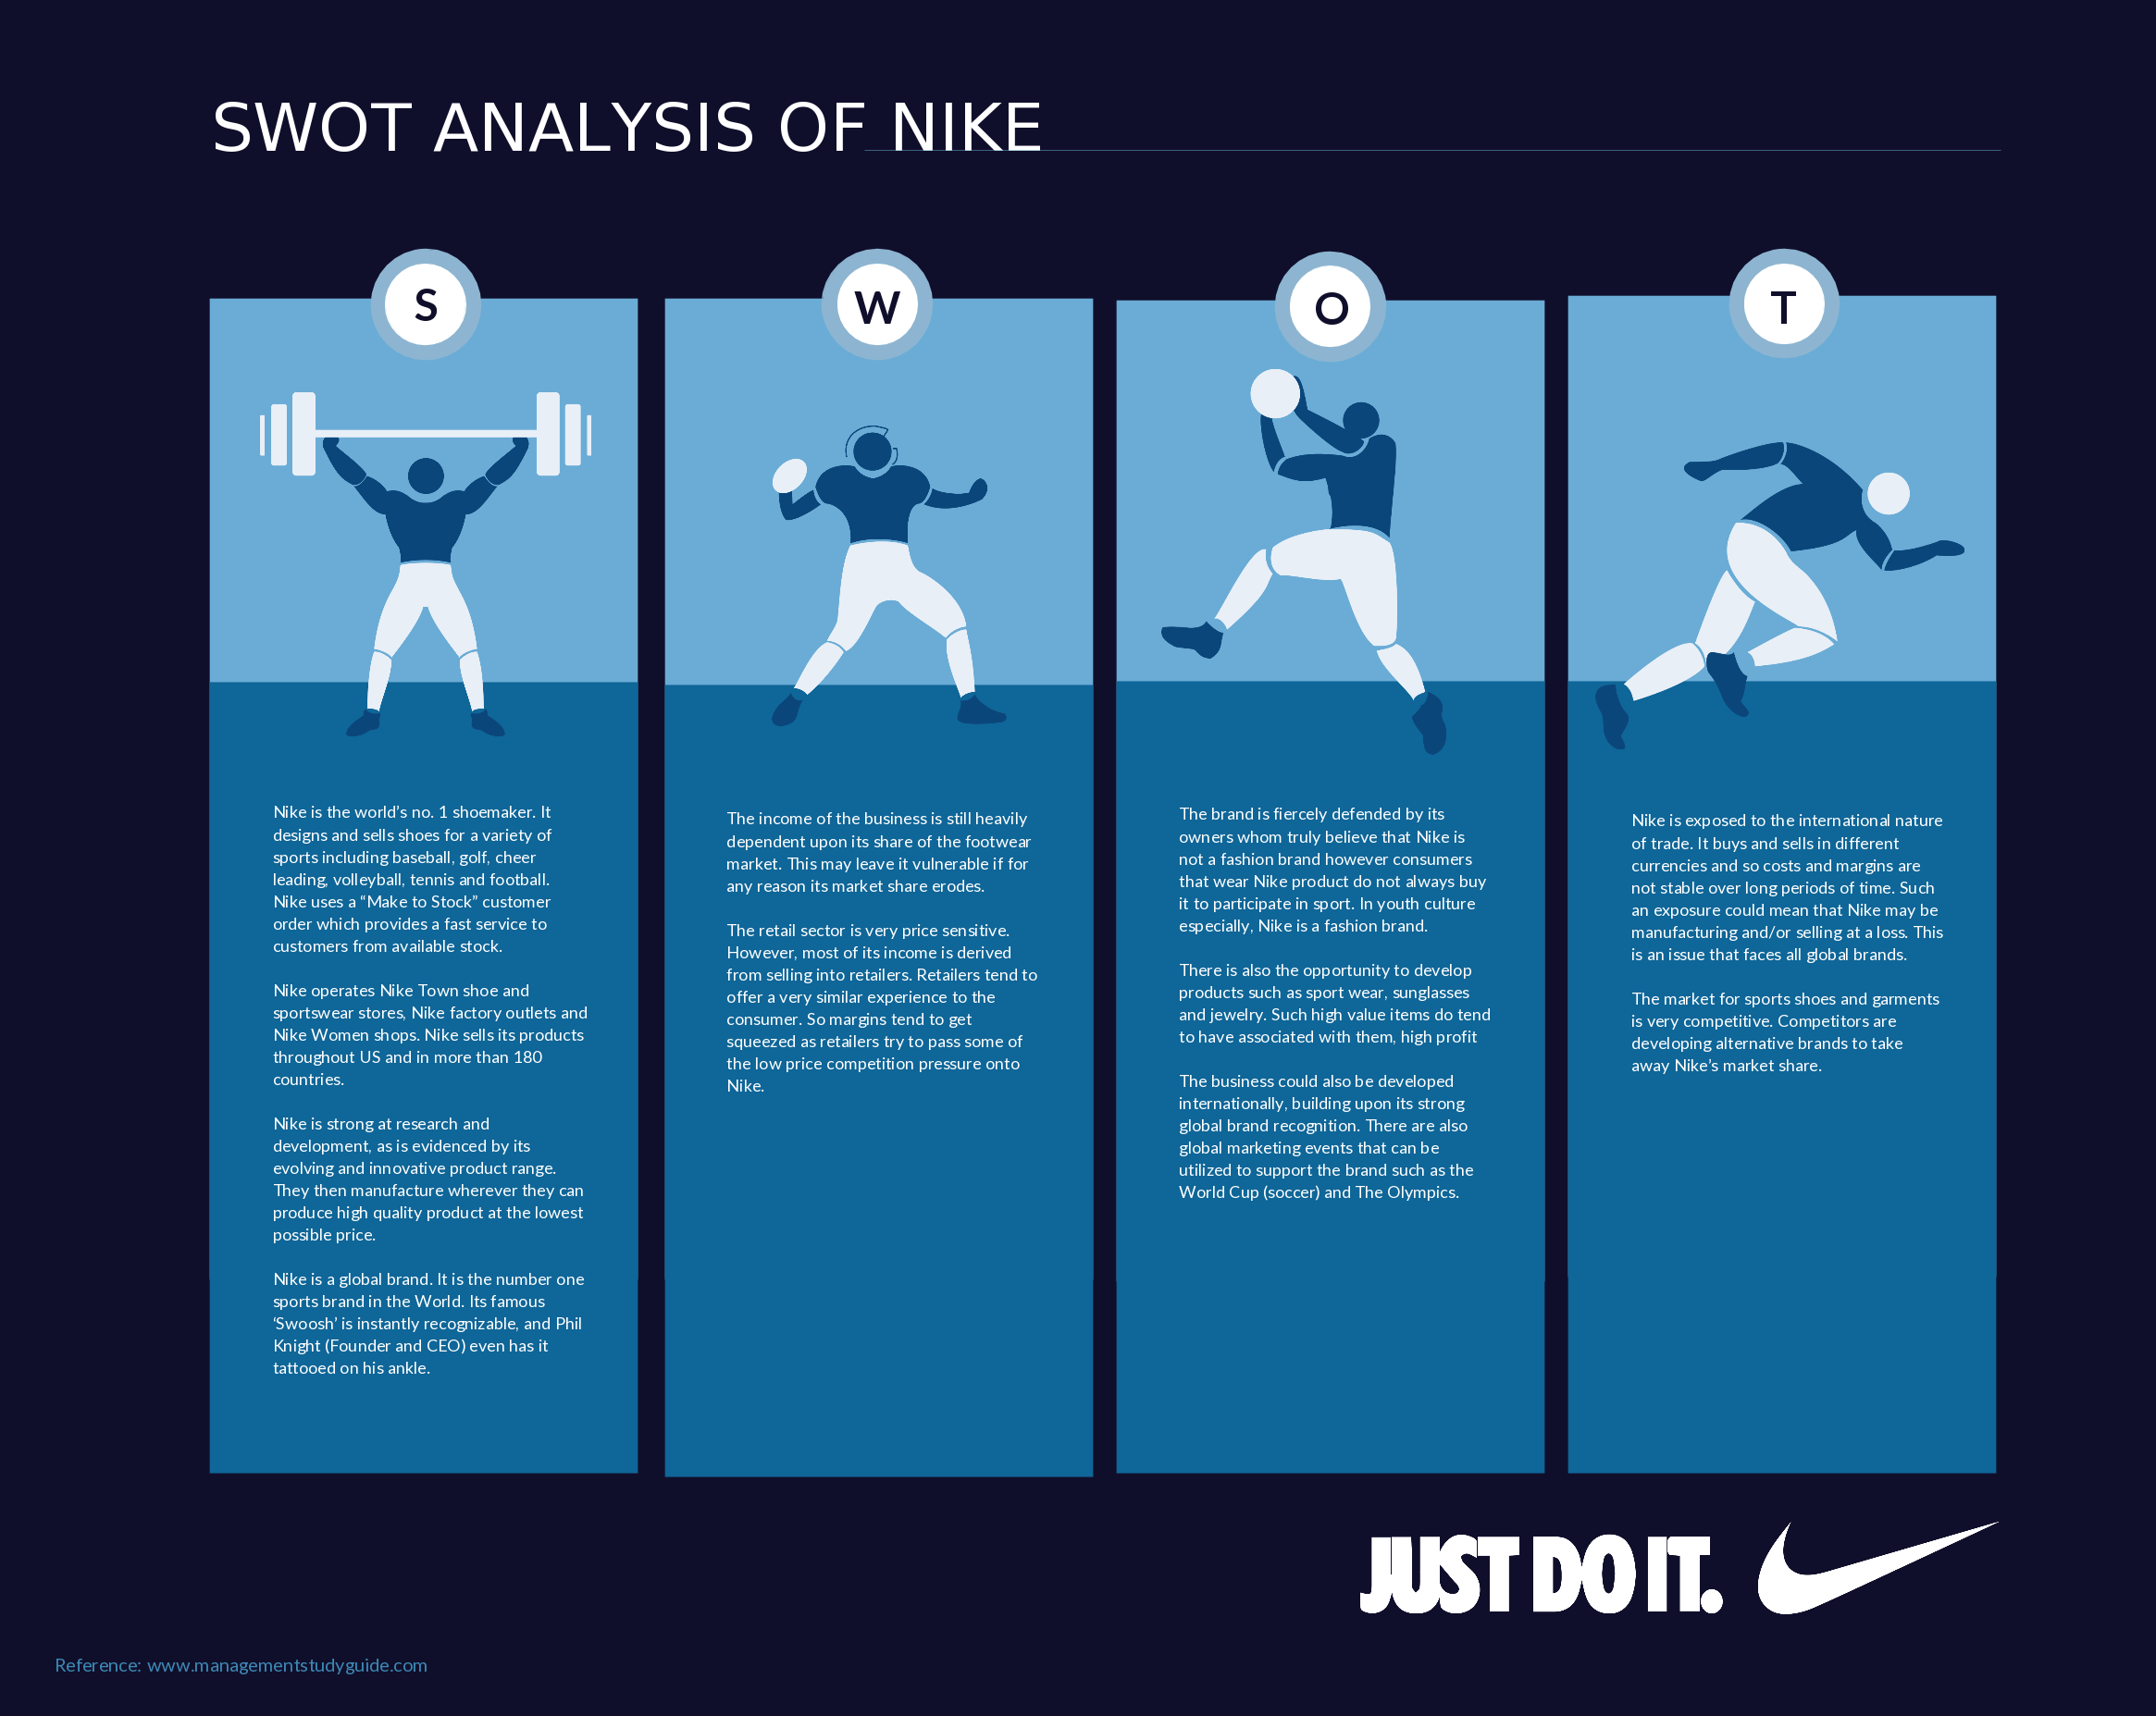 Compare the Strengths and Opportunities of NIKE  | Swot analysis